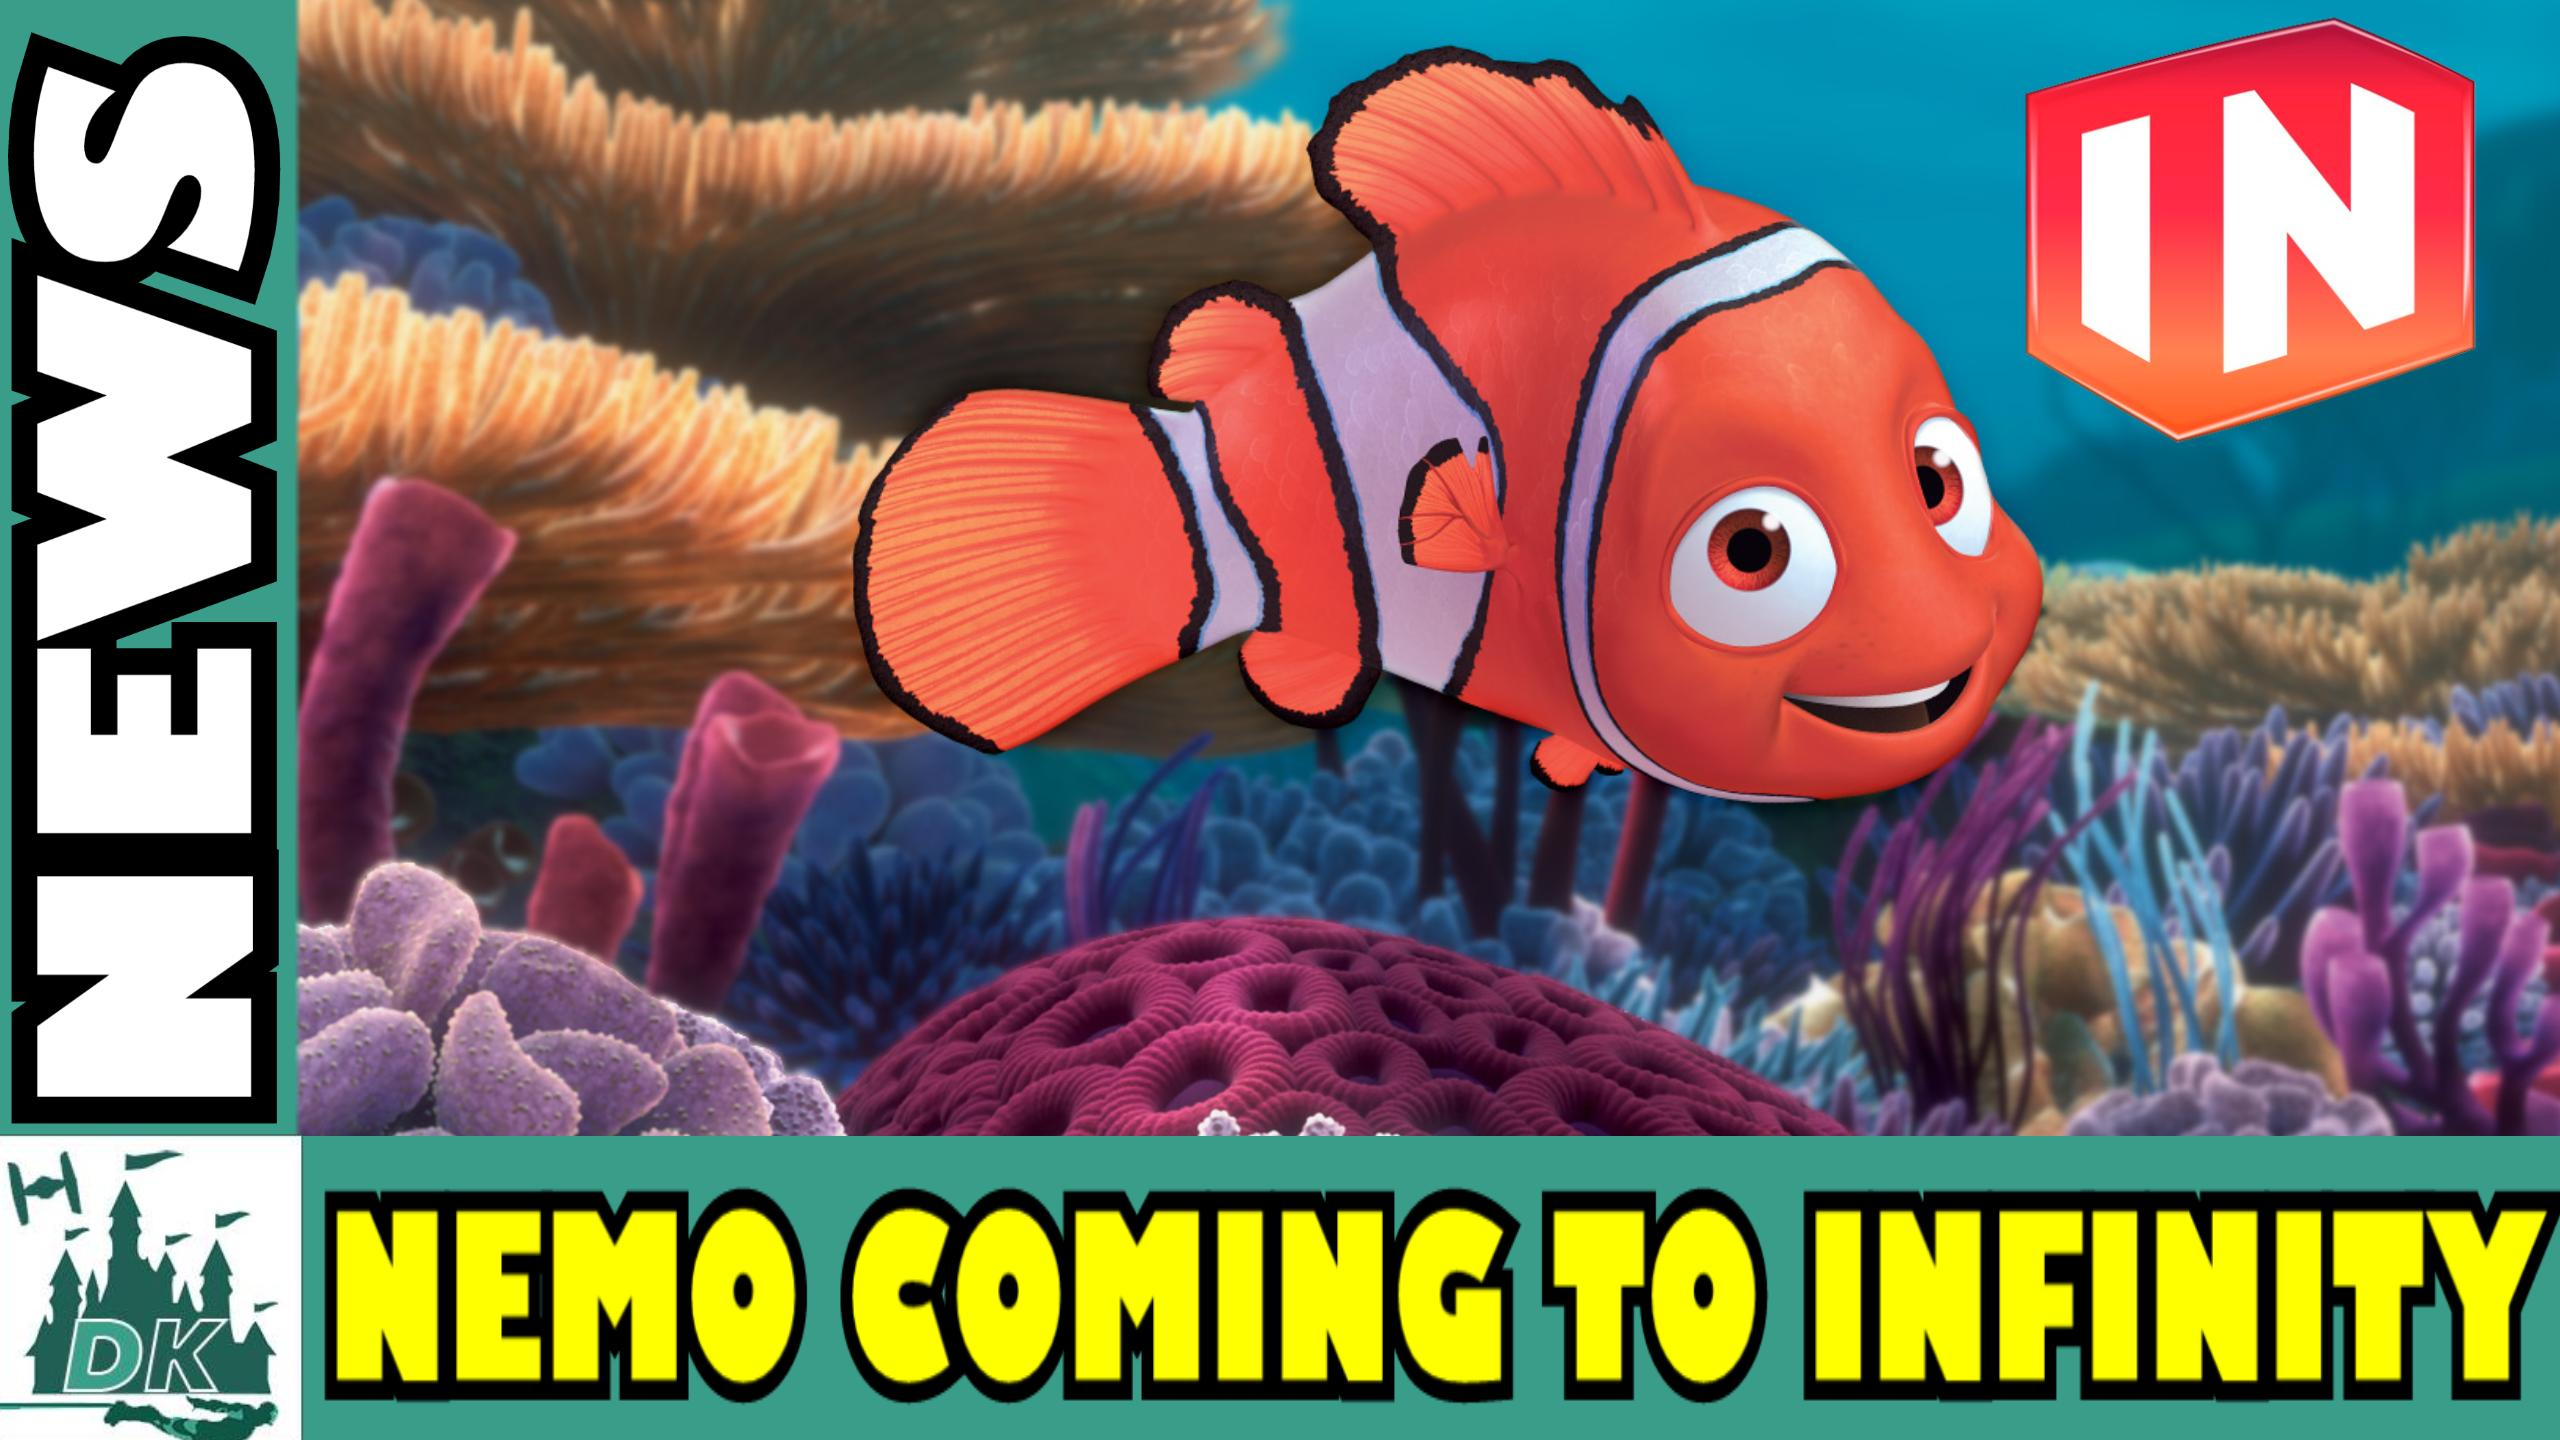 Nemo Disney Infinity 3.0 Figure Listed On Multiple Retailers